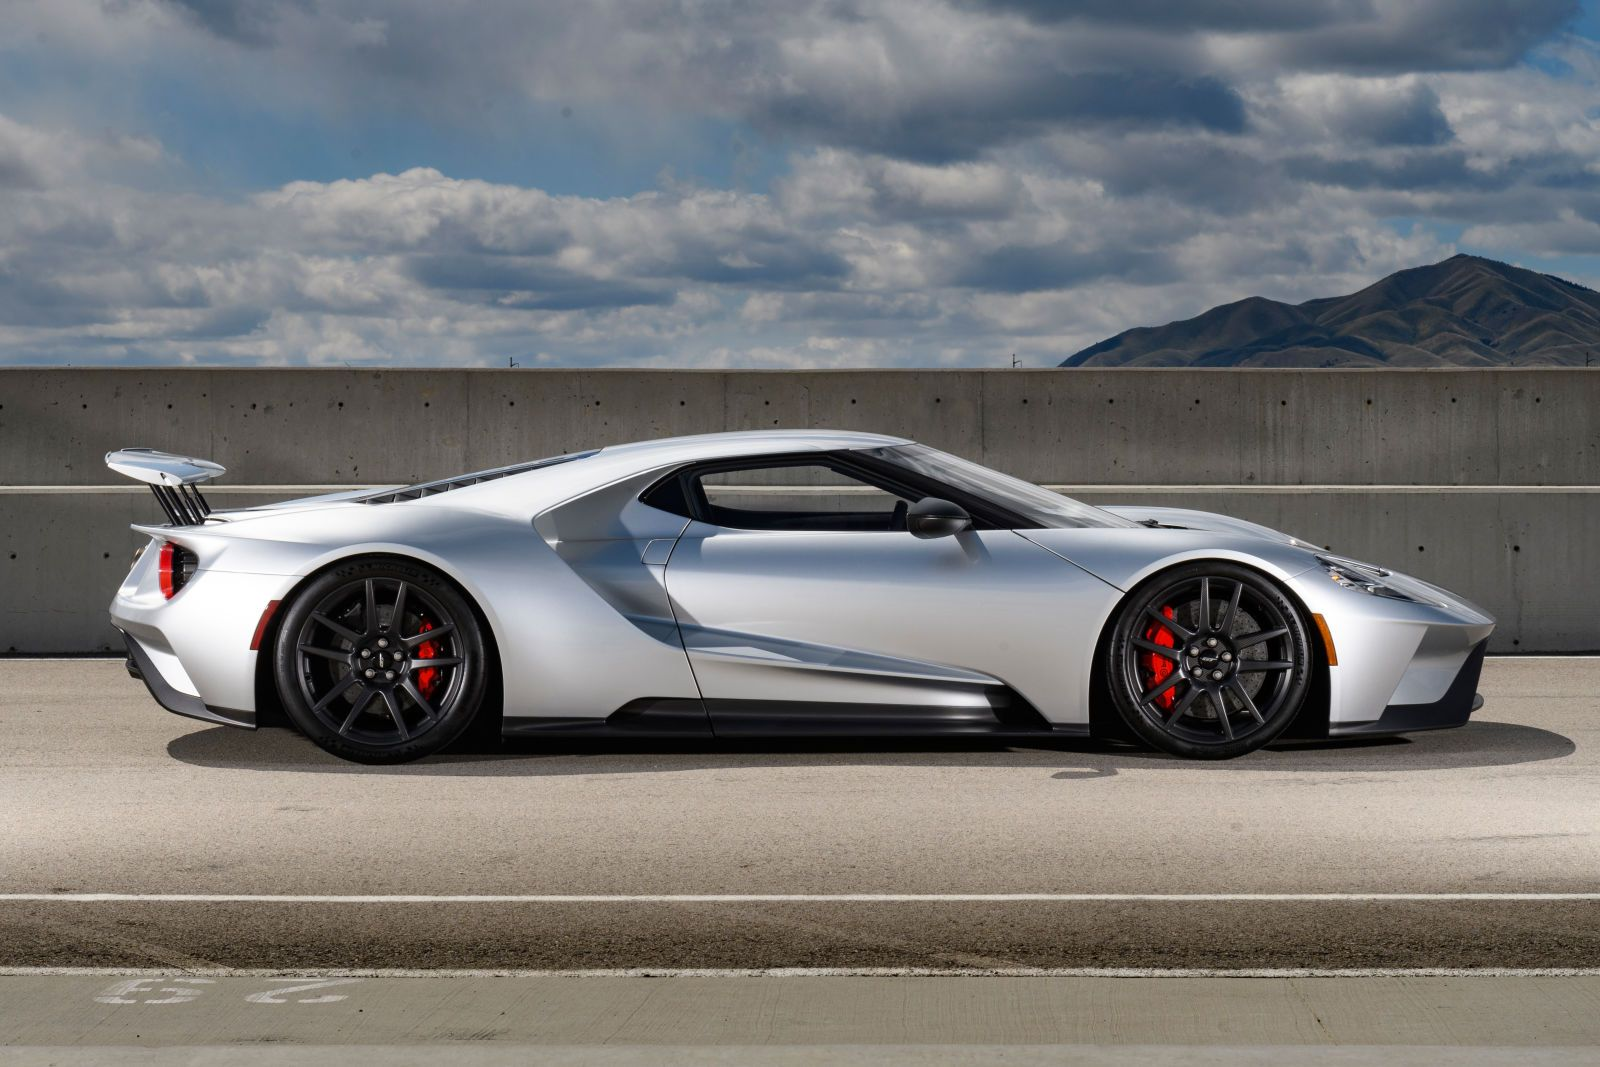 The 2017 Ford Gt Makes Most Supercars Look Soft Ford Gt Super Cars Ford Gt 2017